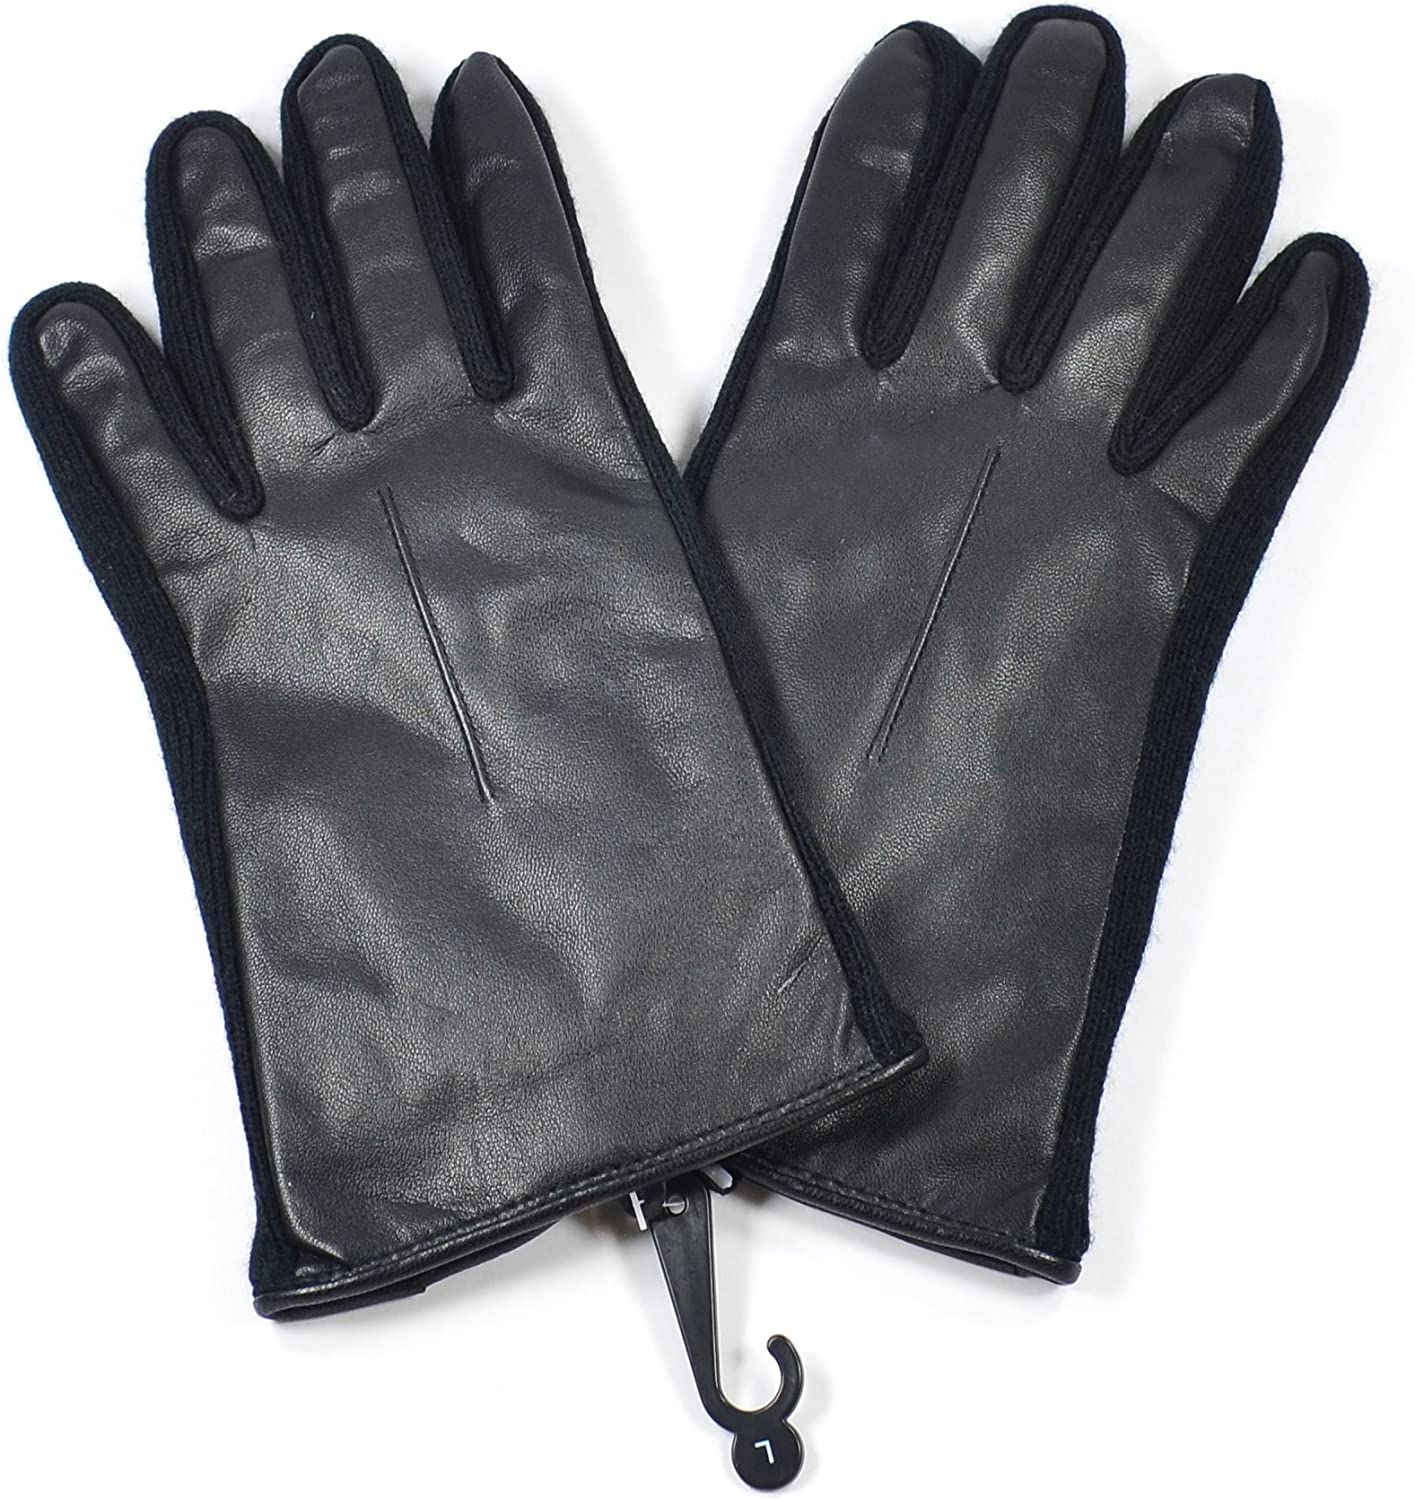 Croft /& Barrow Leather Winter Driving Gloves for Men L Black Knit Trim